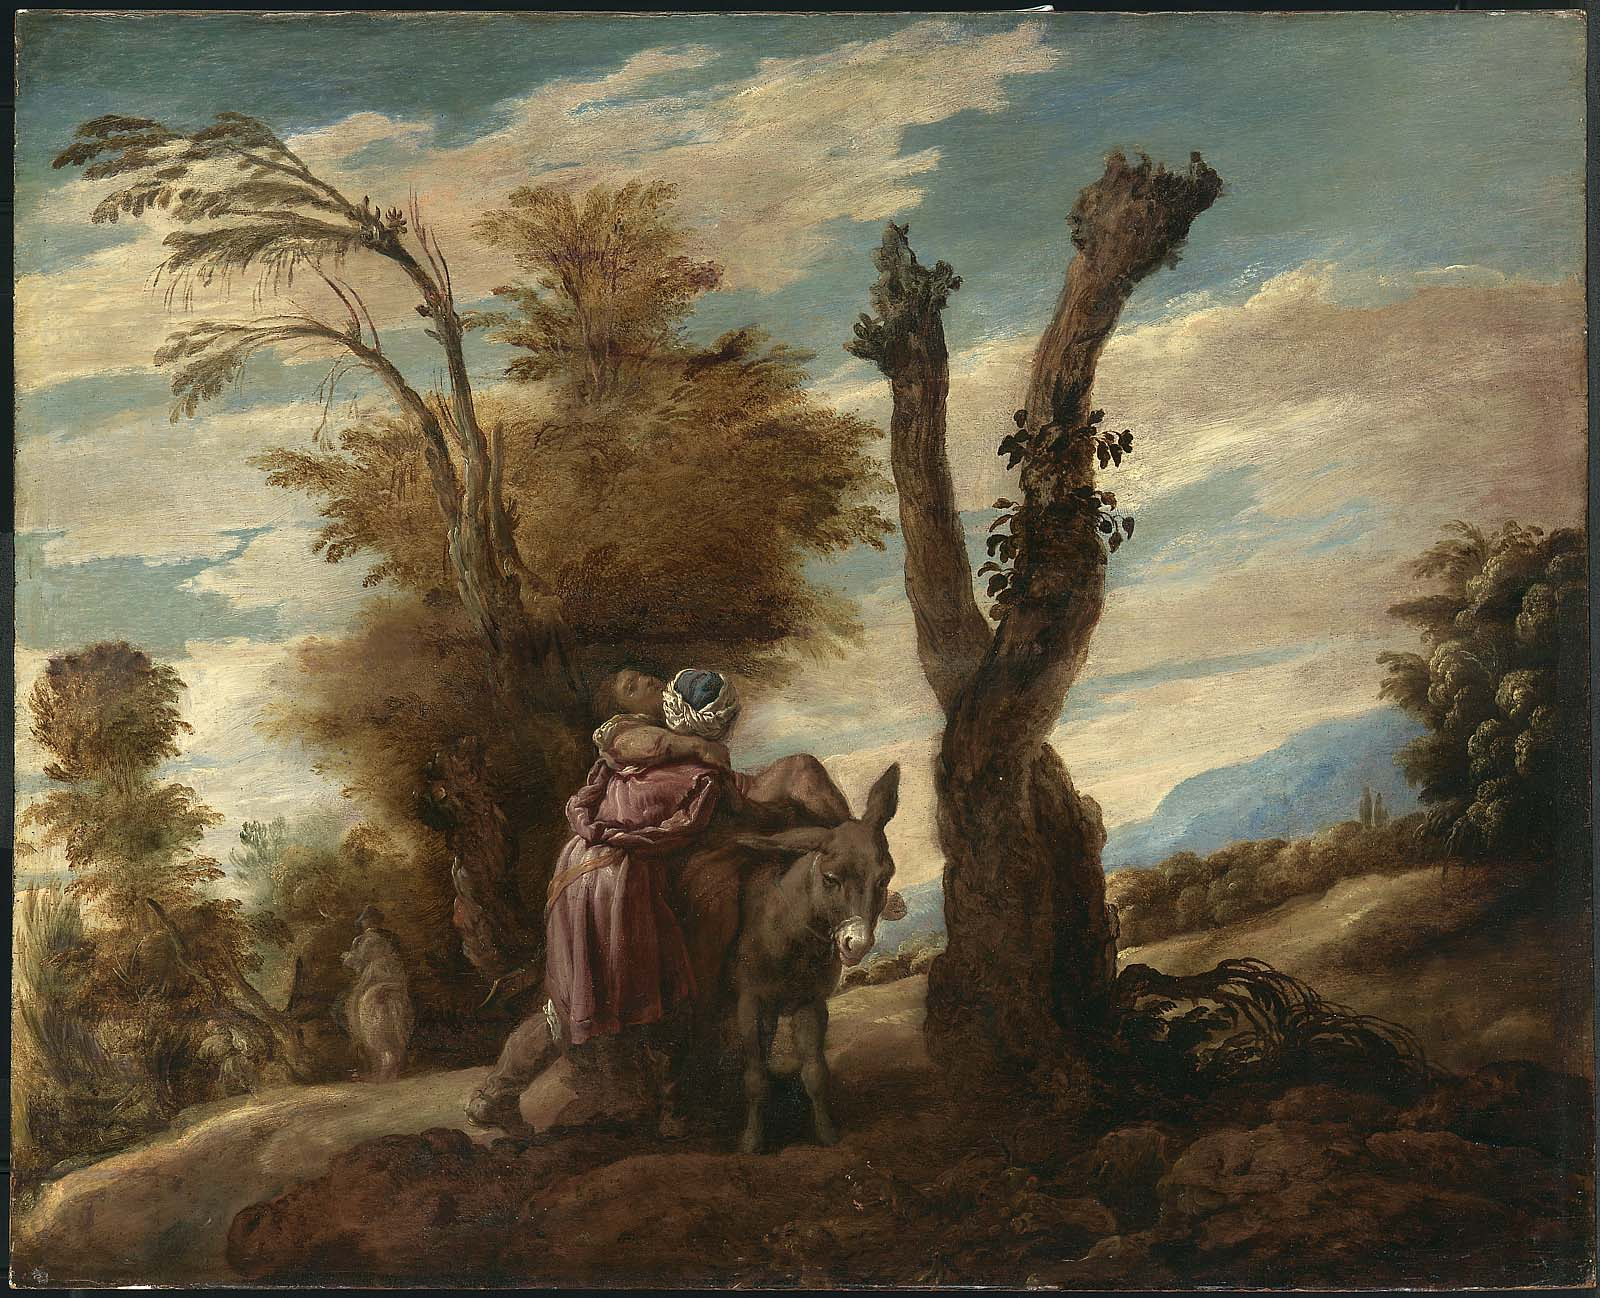 Parable of the Good Samaritan | Museum of Fine Arts, Boston